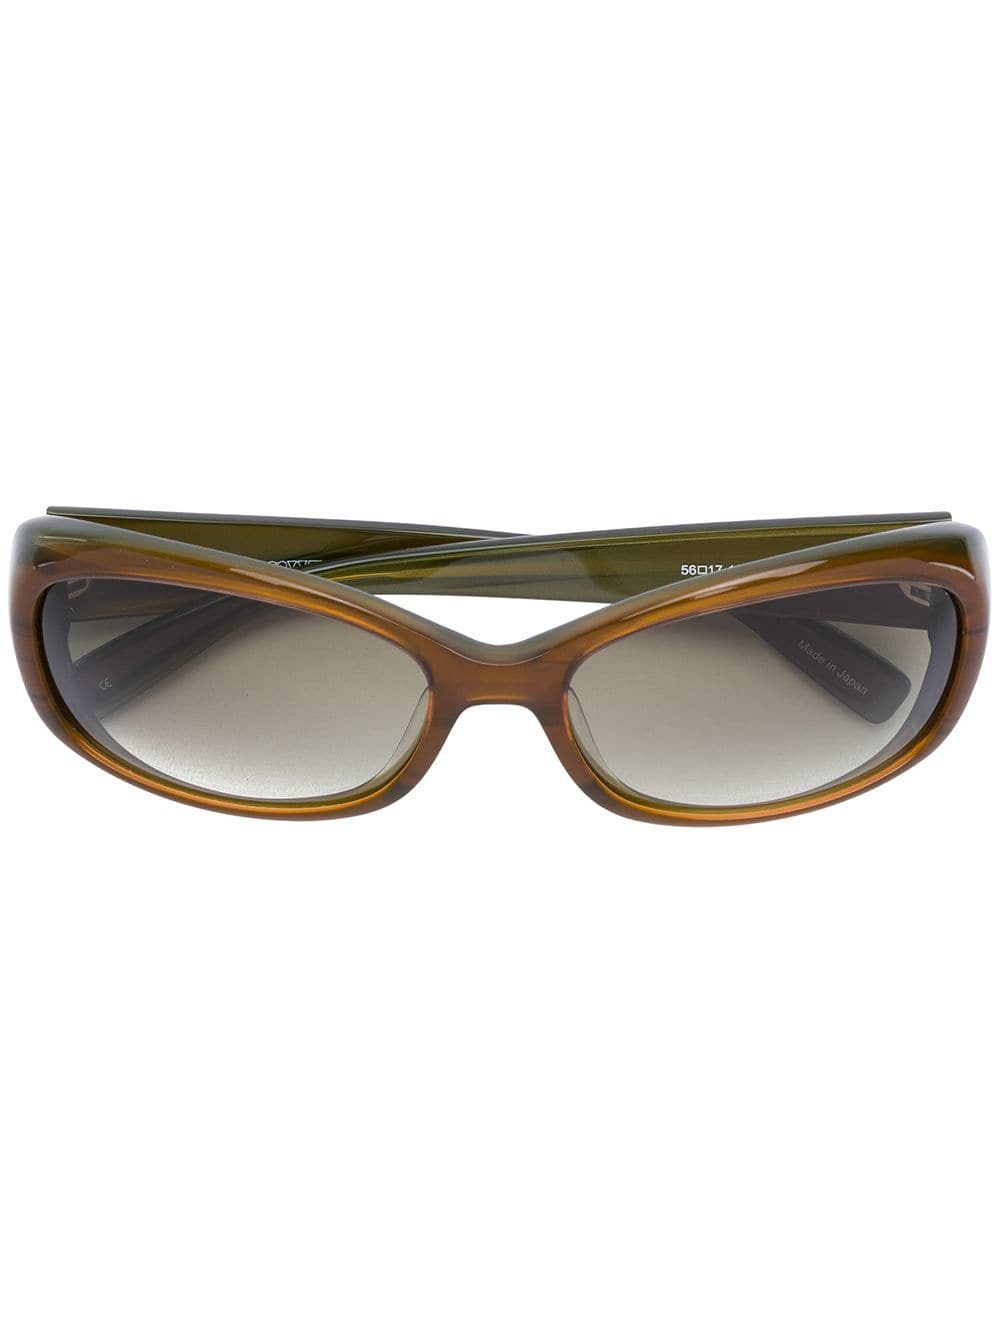 10e034d50ba oliver-peoples-phoebe-sunglasses-brown-farfetch-com-photo.jpg 1543895427